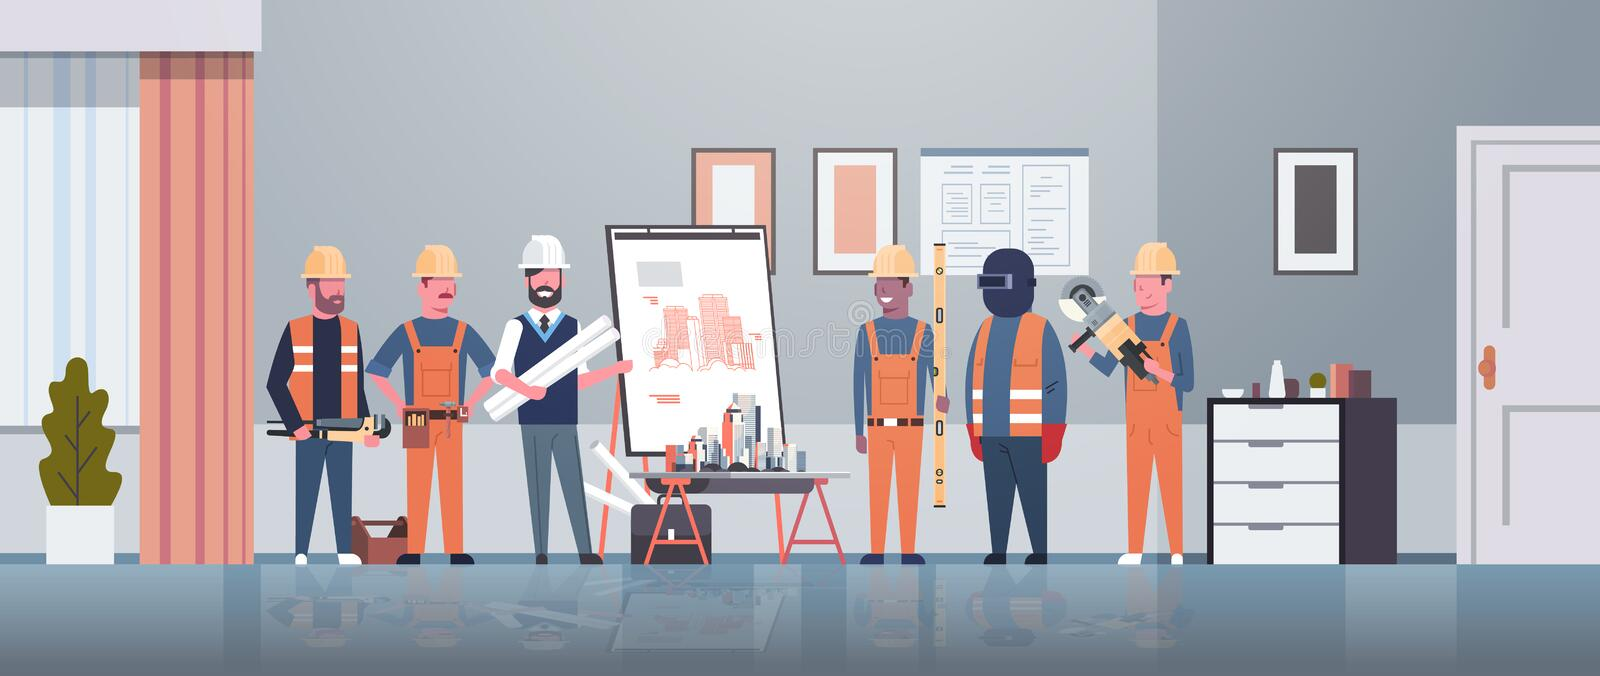 Man architect engineer showing drawing building blueprint on easel board to construction workers group panning project vector illustration